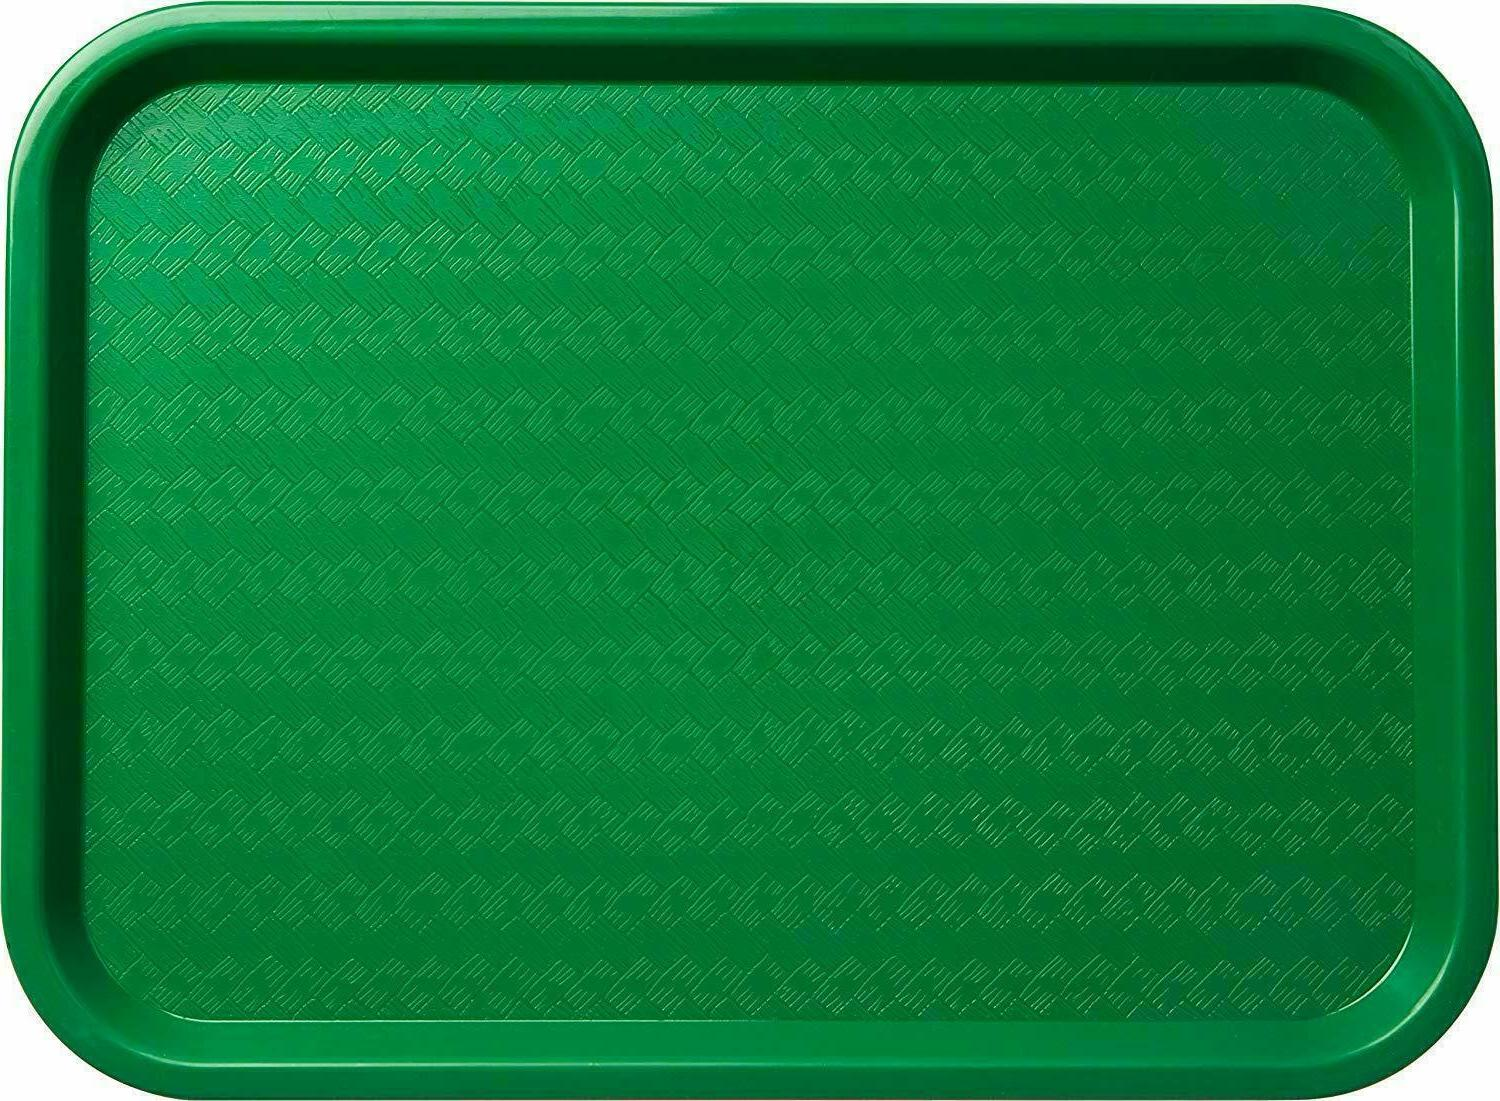 serving trays green plastic fast food tray